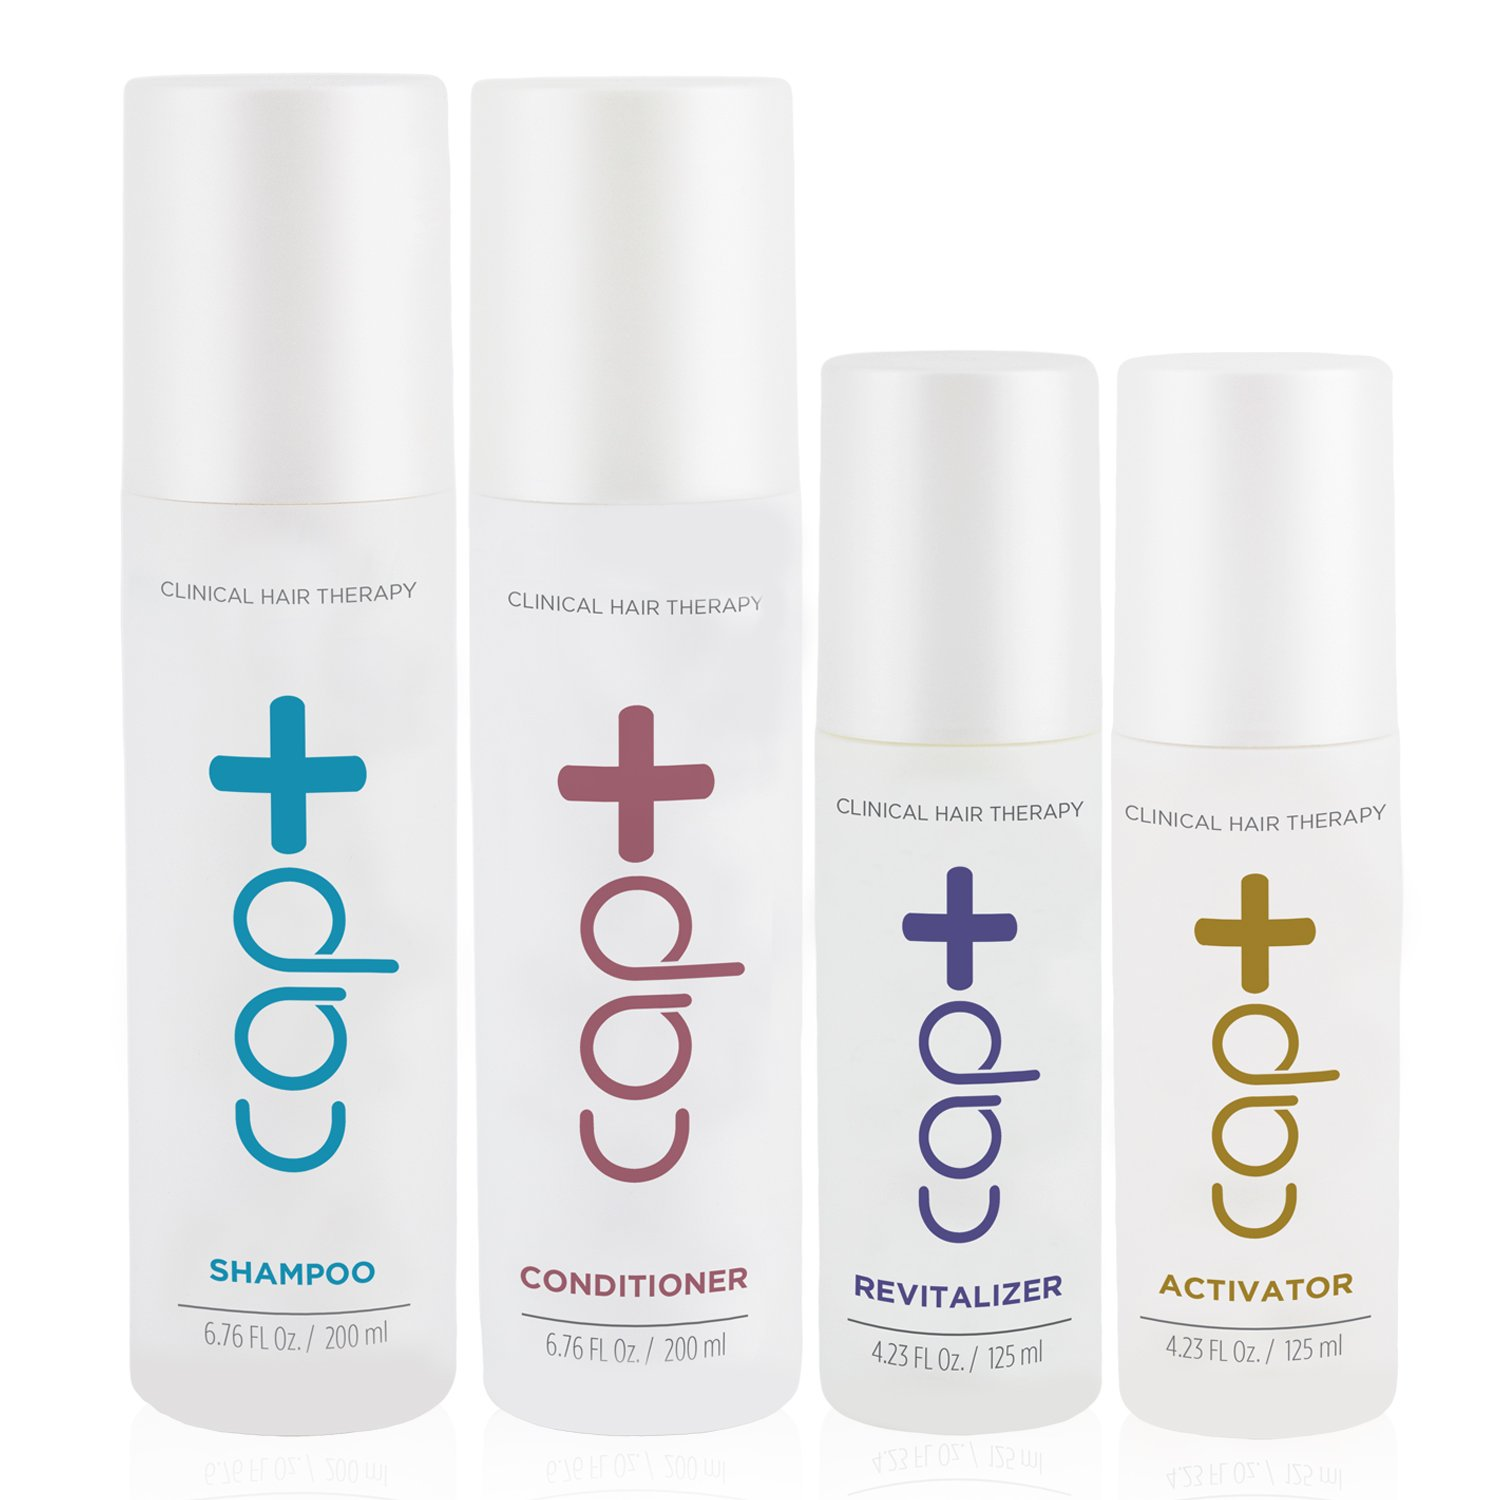 Cap+ Clinical Hair Therapy Bundle (Includes: Shampoo, Conditioner, Activator, and Revitalizer) for use in conjunction with the Capillus low-level light therapy devices